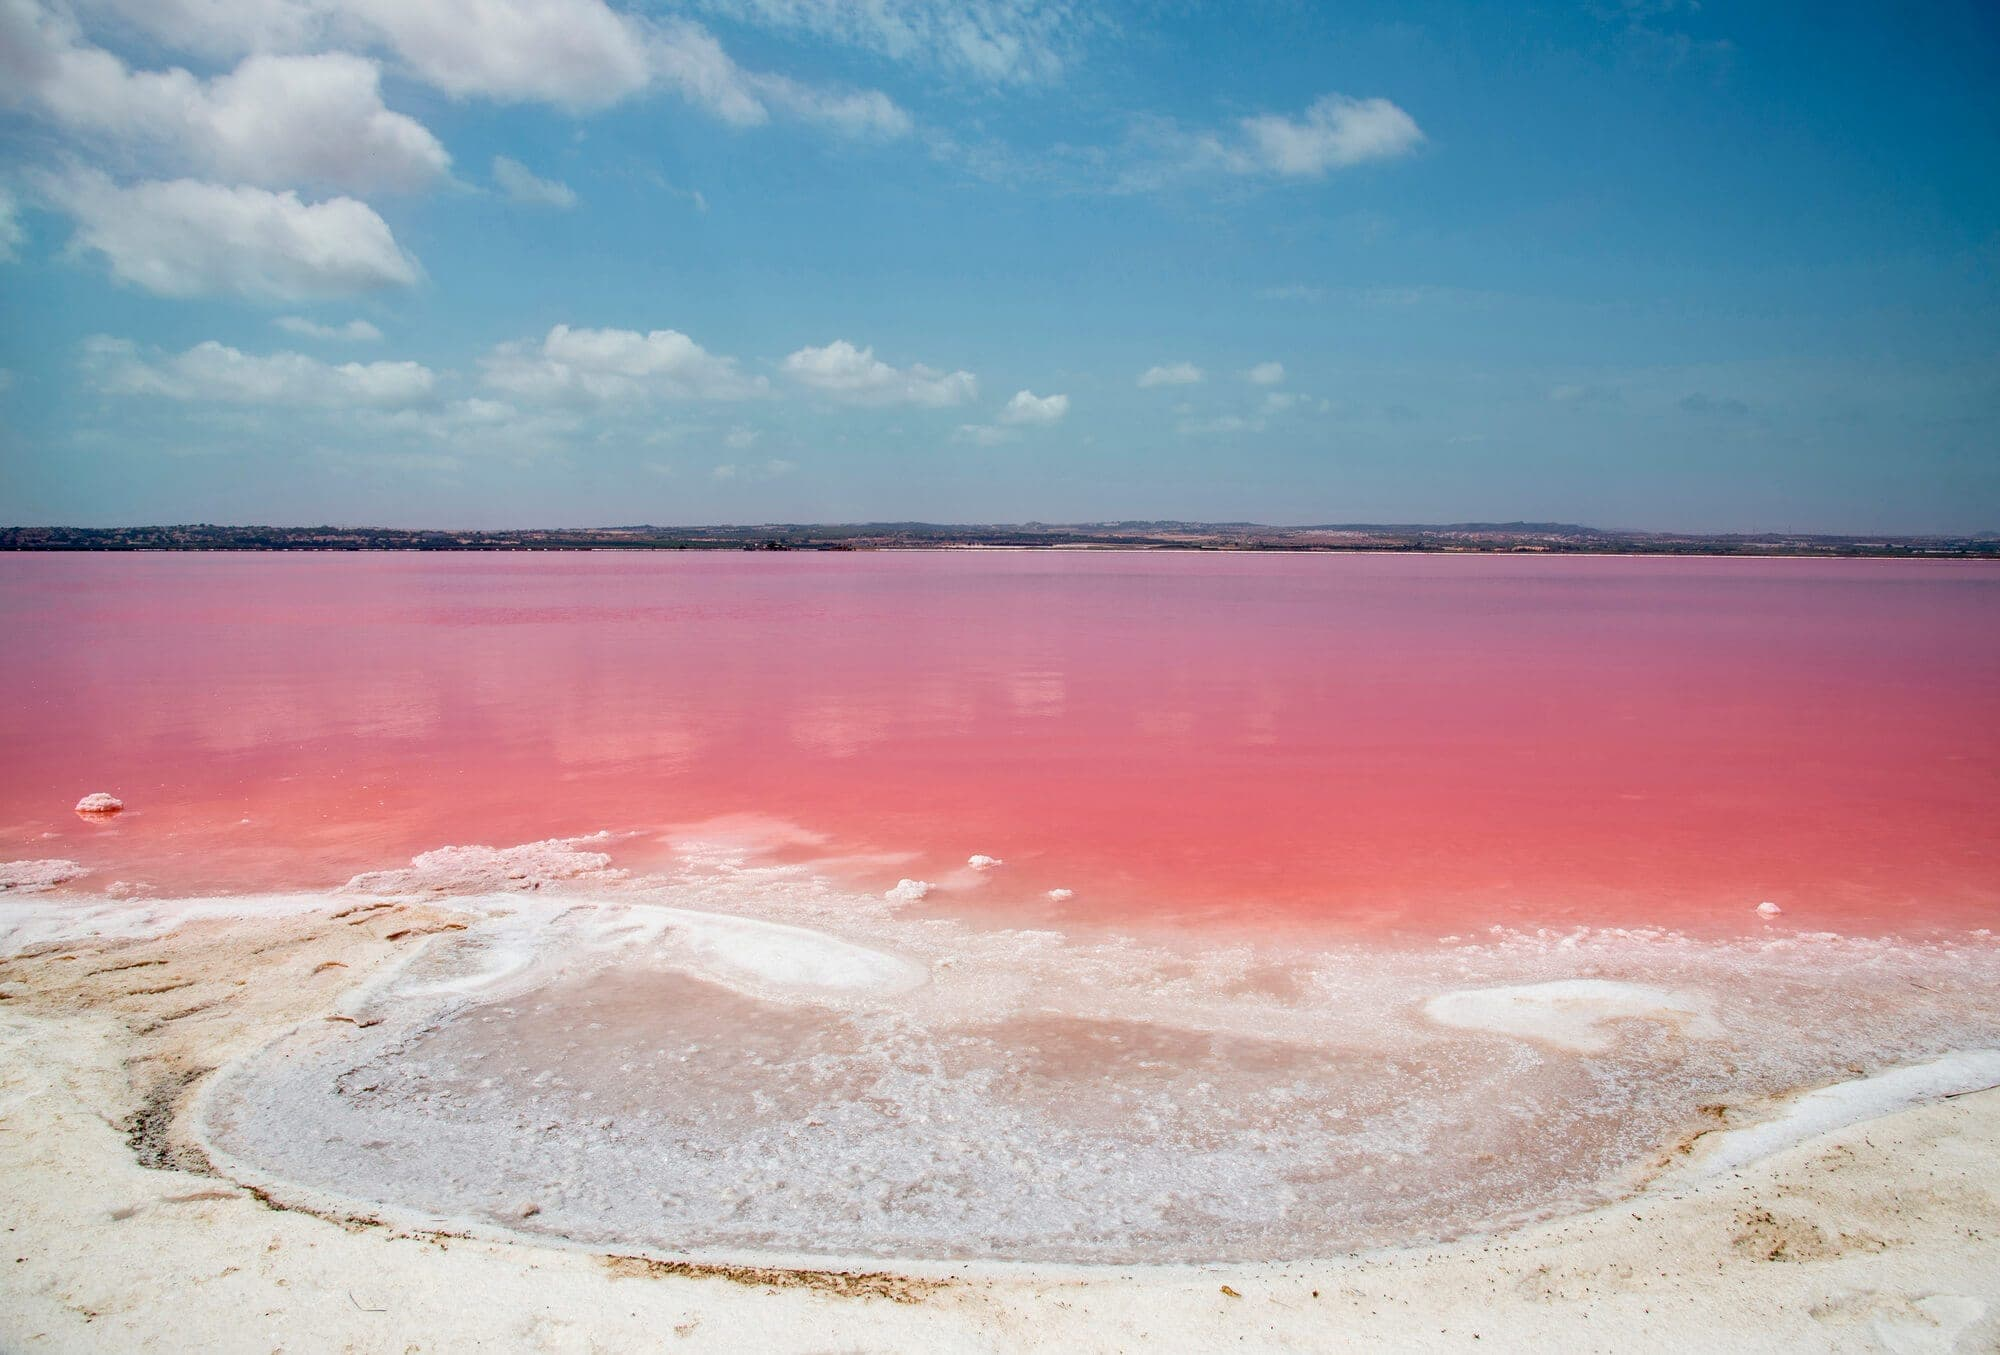 Did you know there's a pink lake in Spain? Discover Laguna Salada de Torrevieja